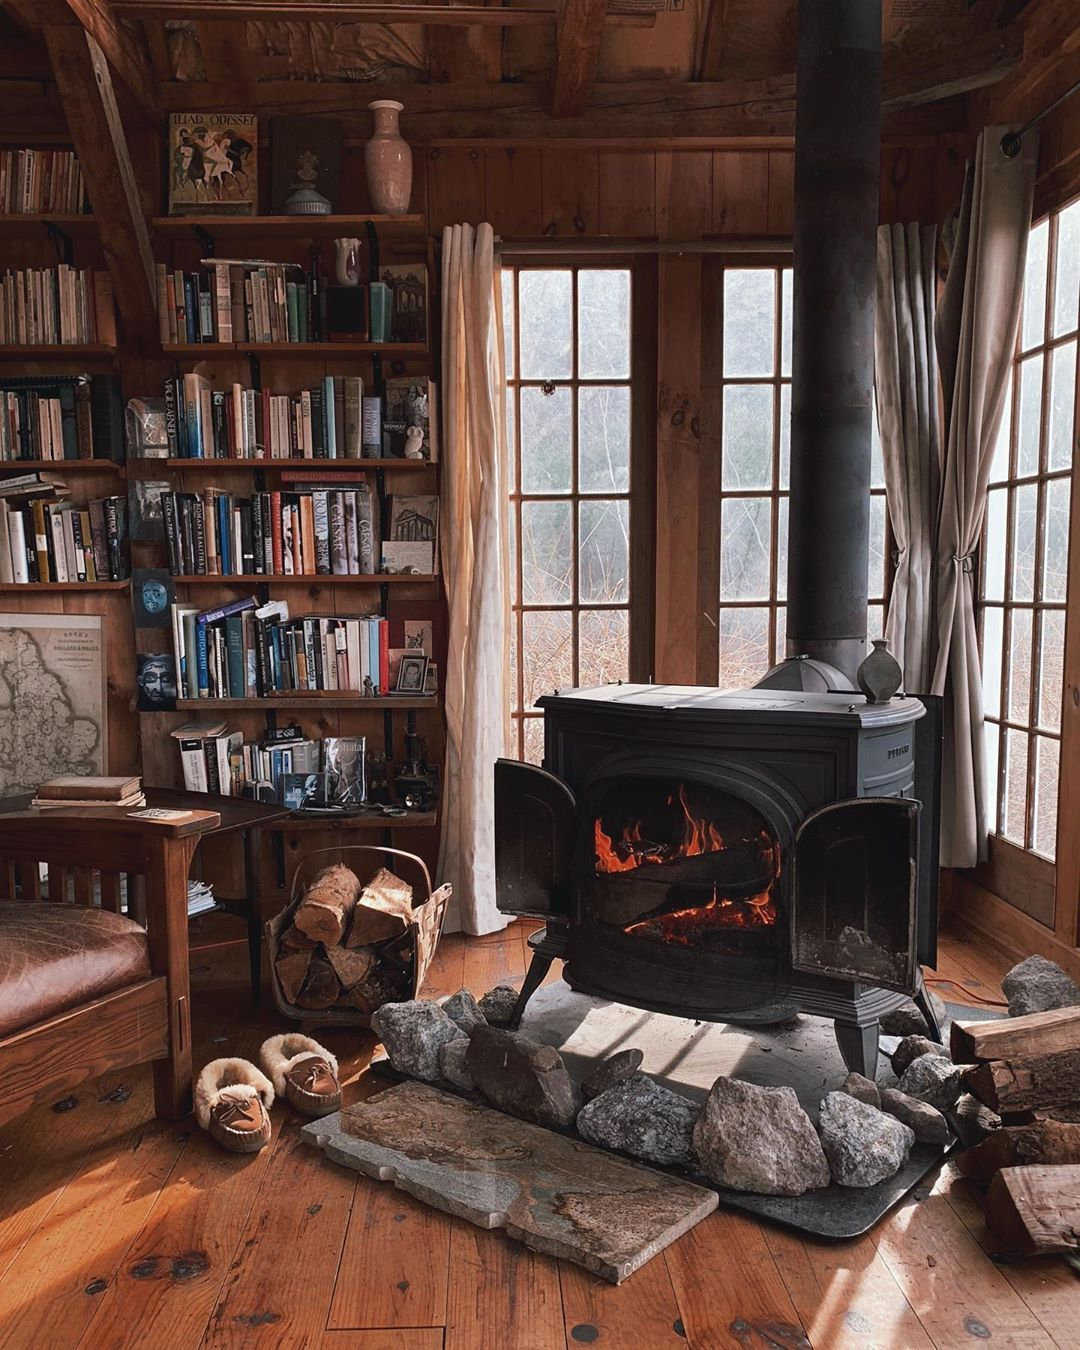 Nothing says cozy like a burning stove and plenty of reading material... (📸: Forestbound via Instagram)